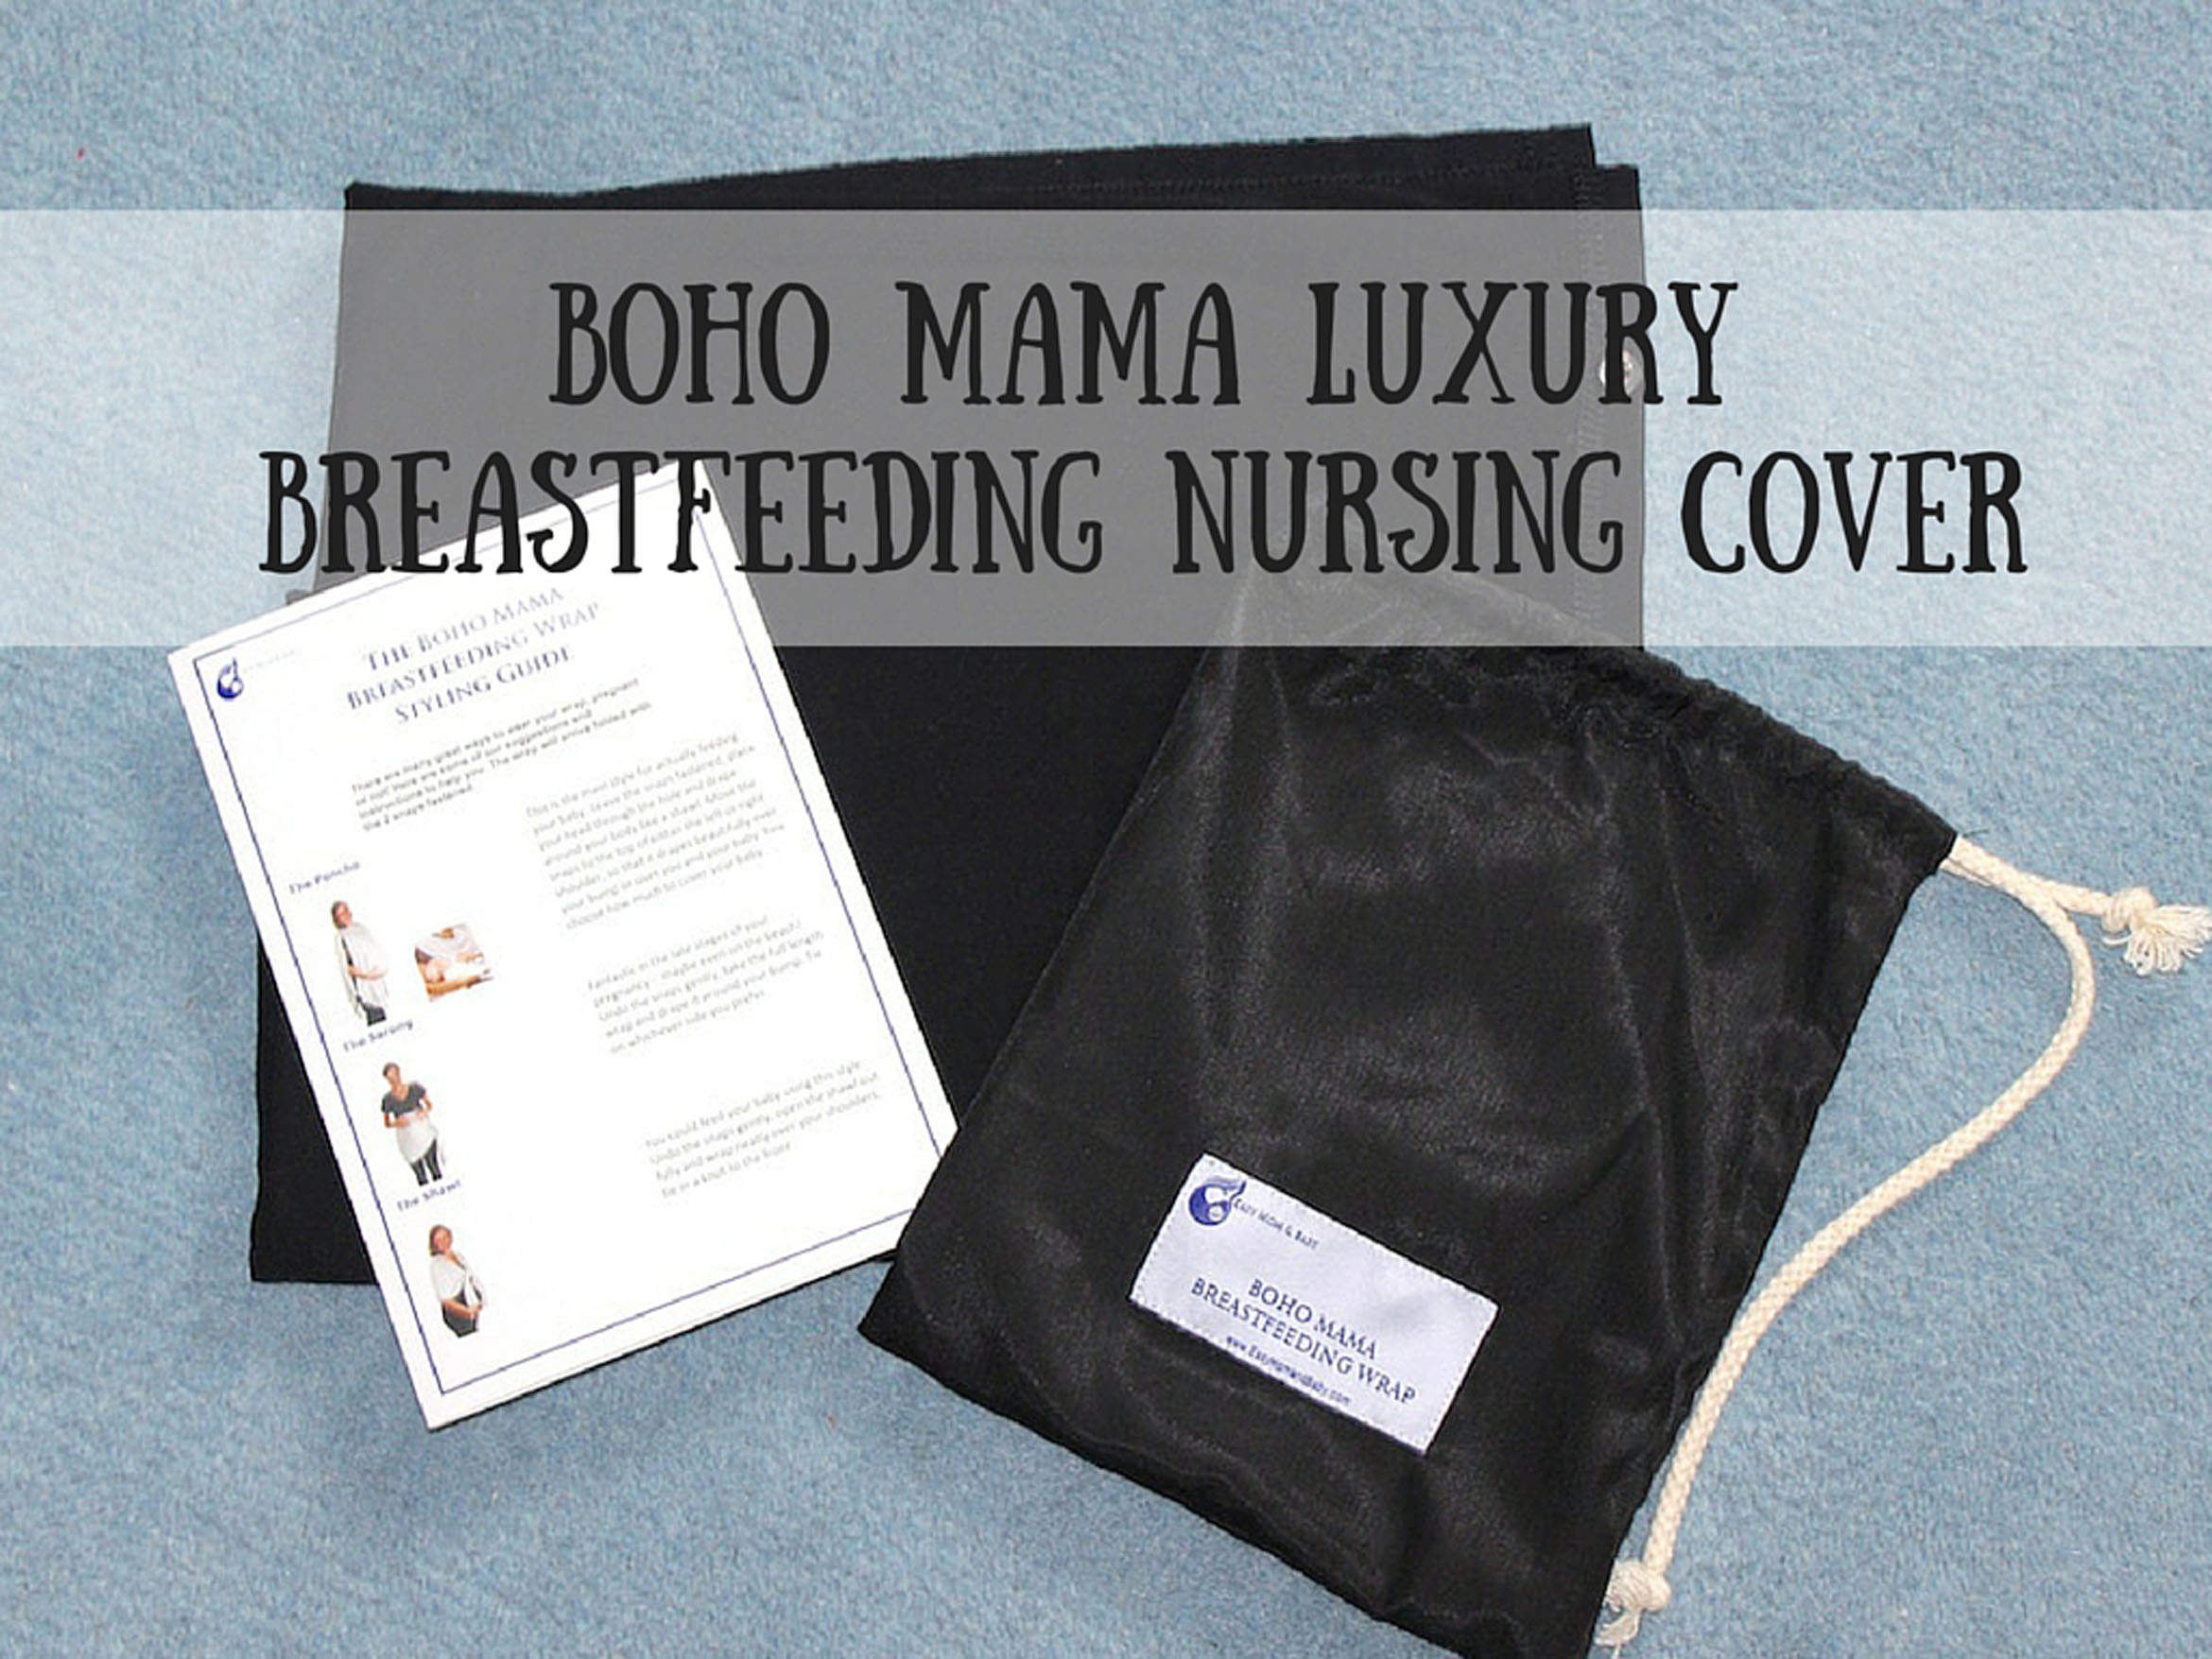 Boho Mama Luxury Breastfeeding Nursing Cover